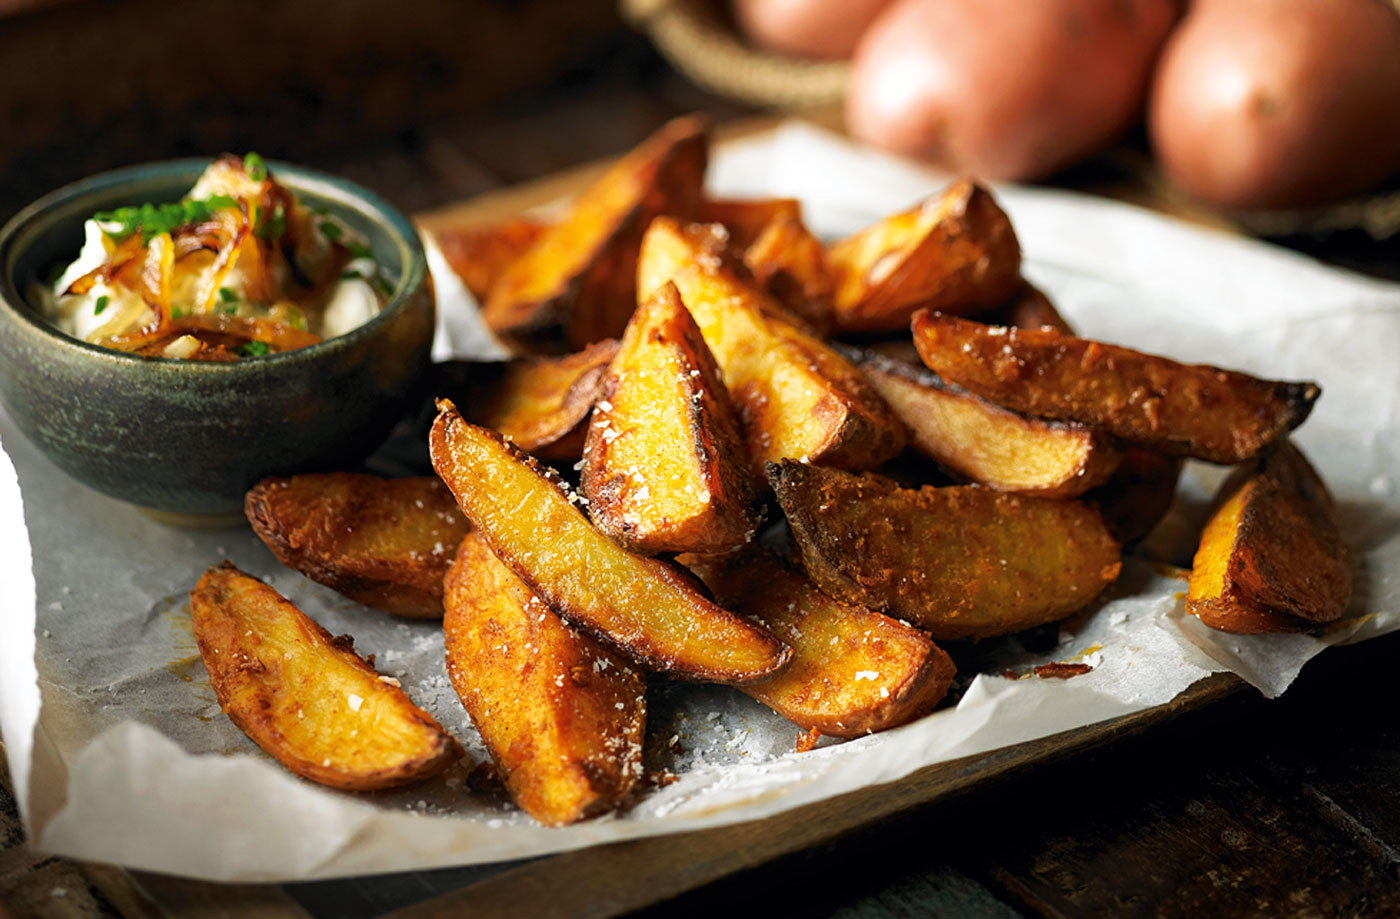 Spicy potato wedges with onion, chive and sour cream dip recipe